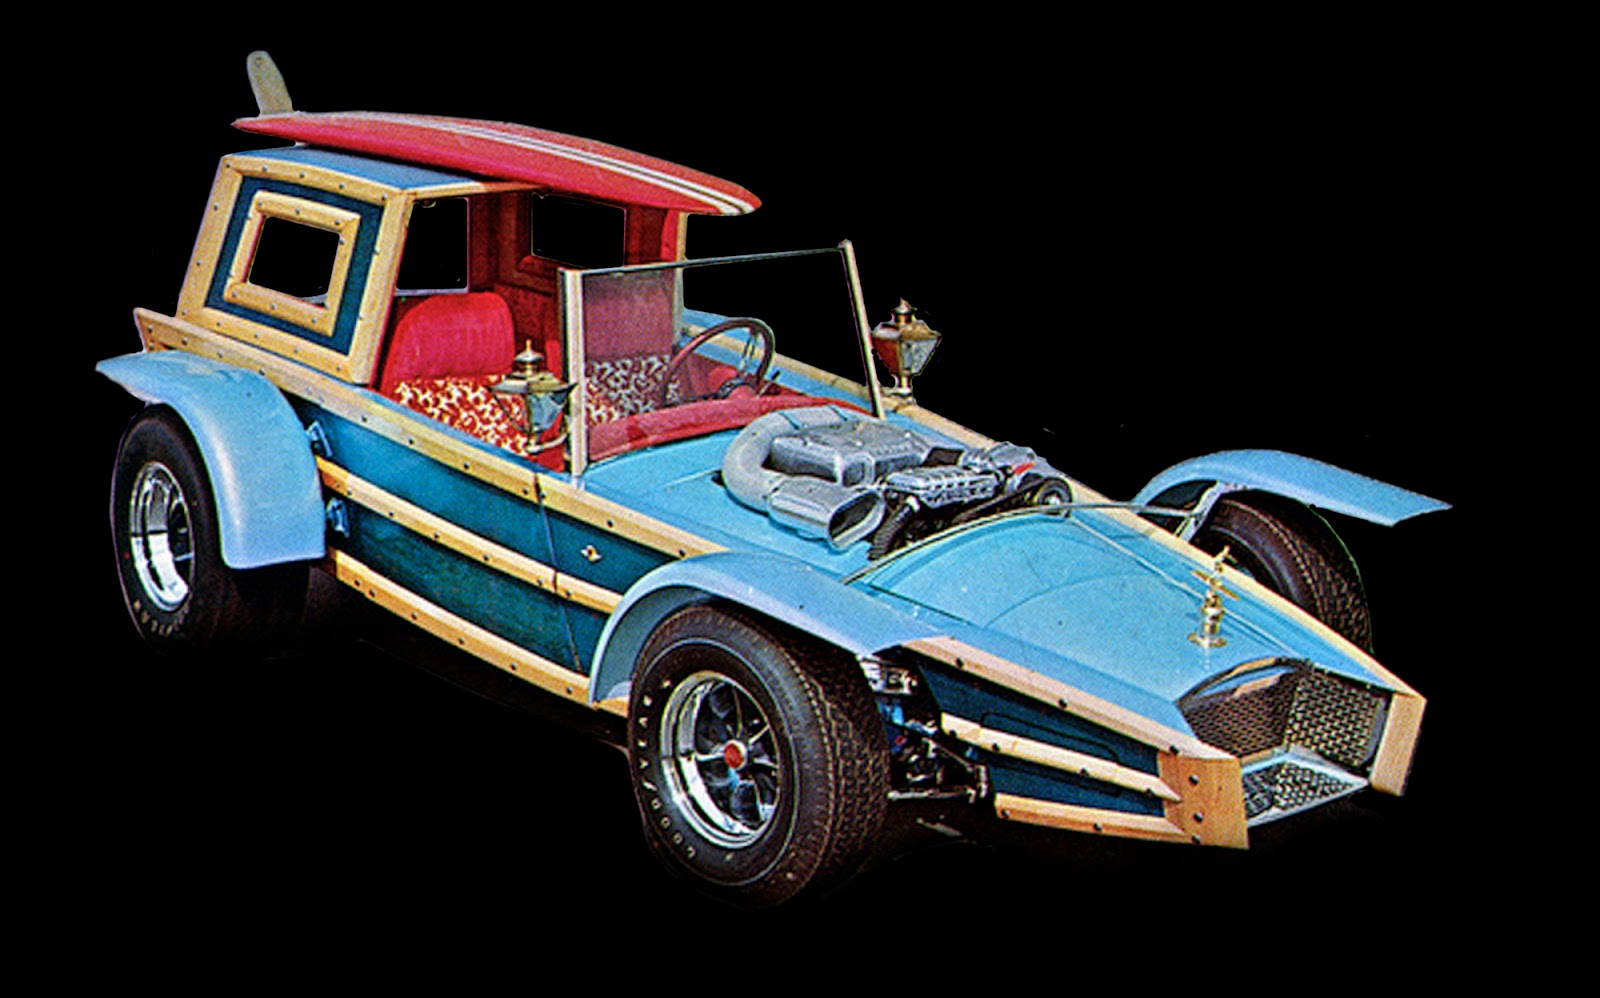 All Car Customs Shows On Spike